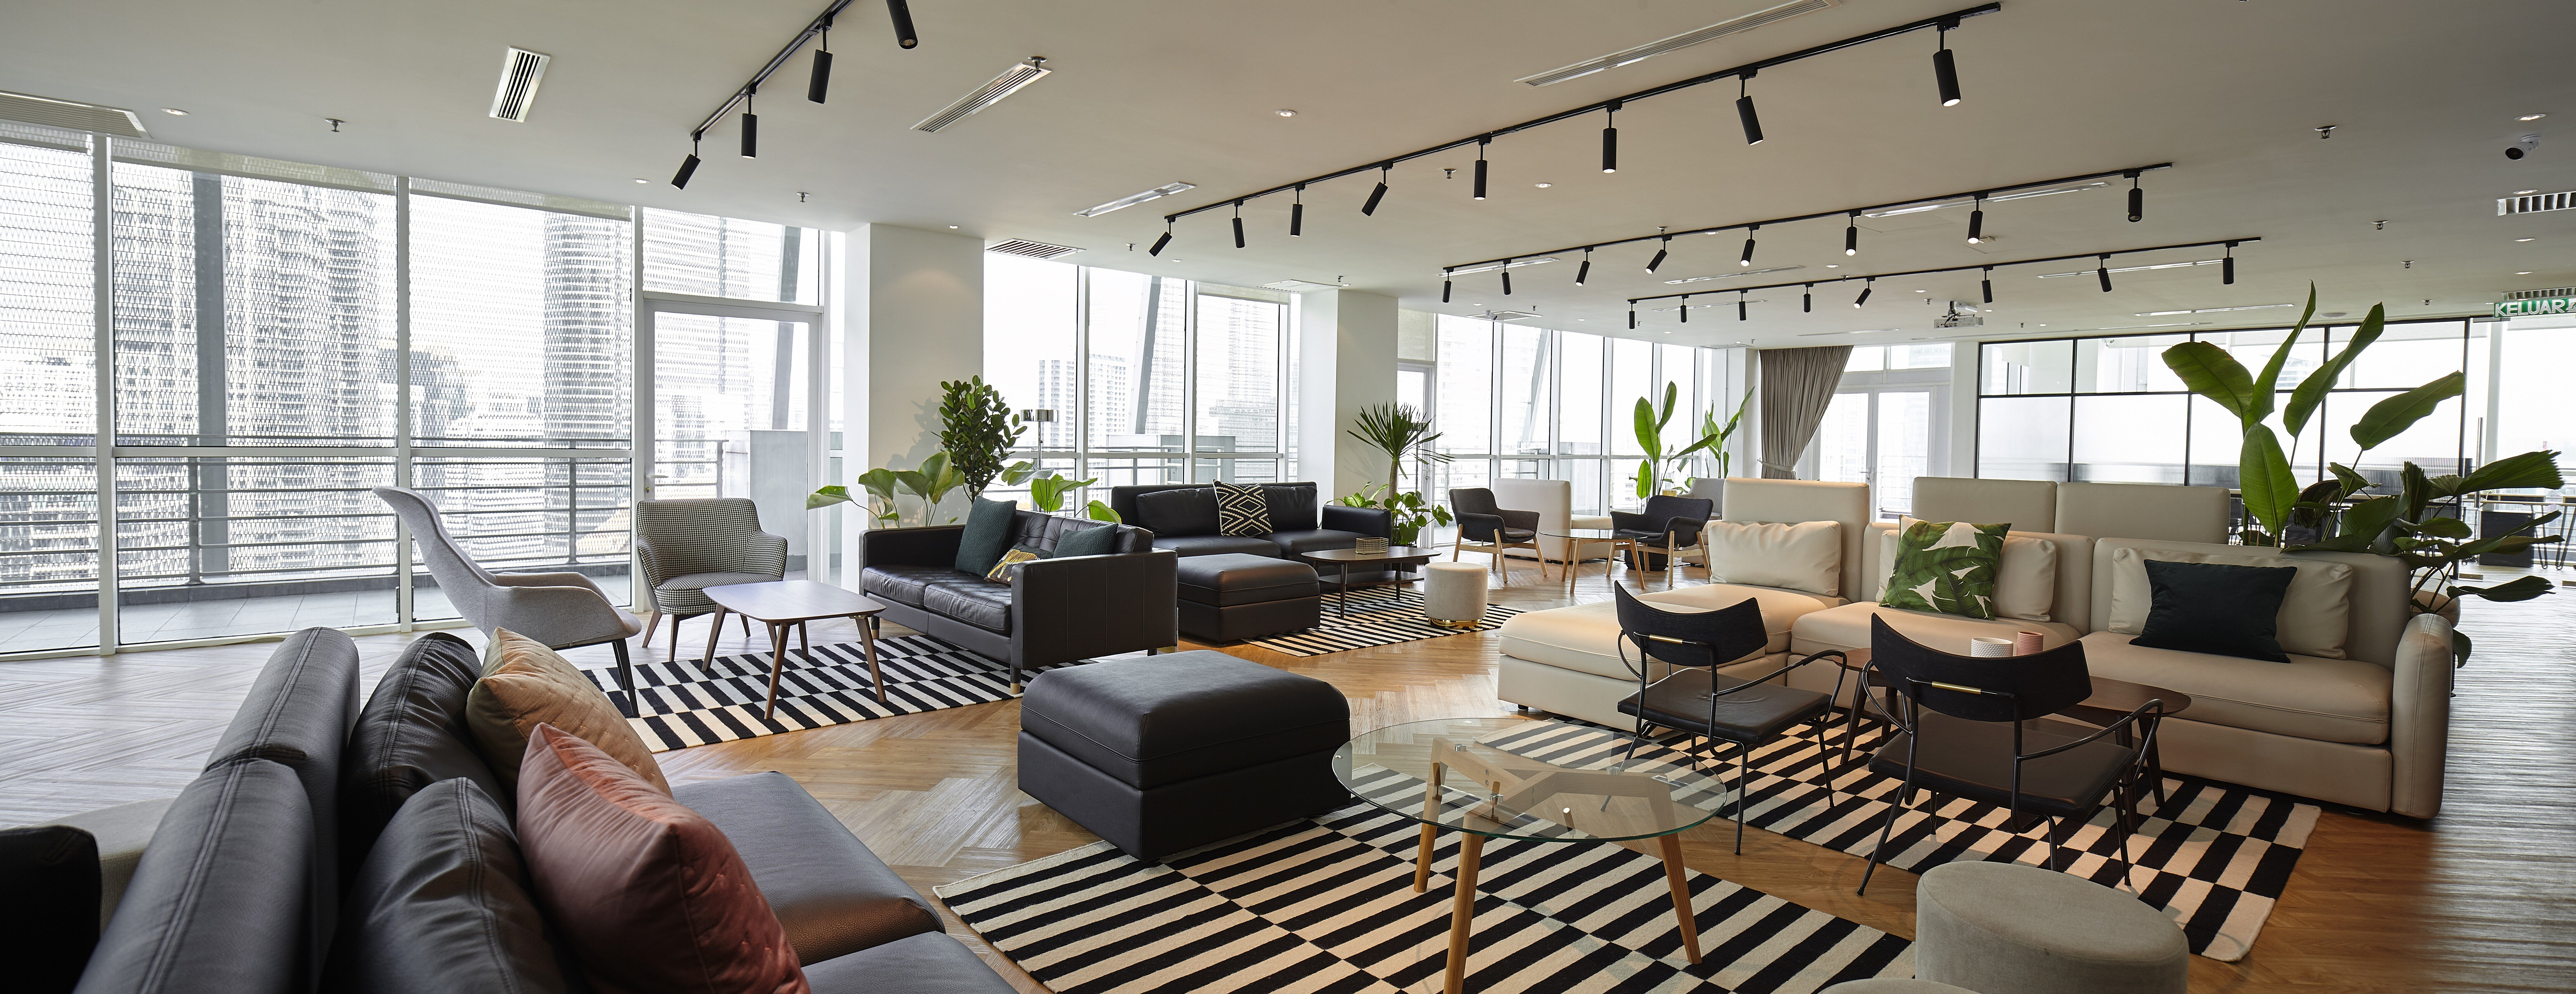 8 of Asia's most beautiful luxury co-working spaces | South